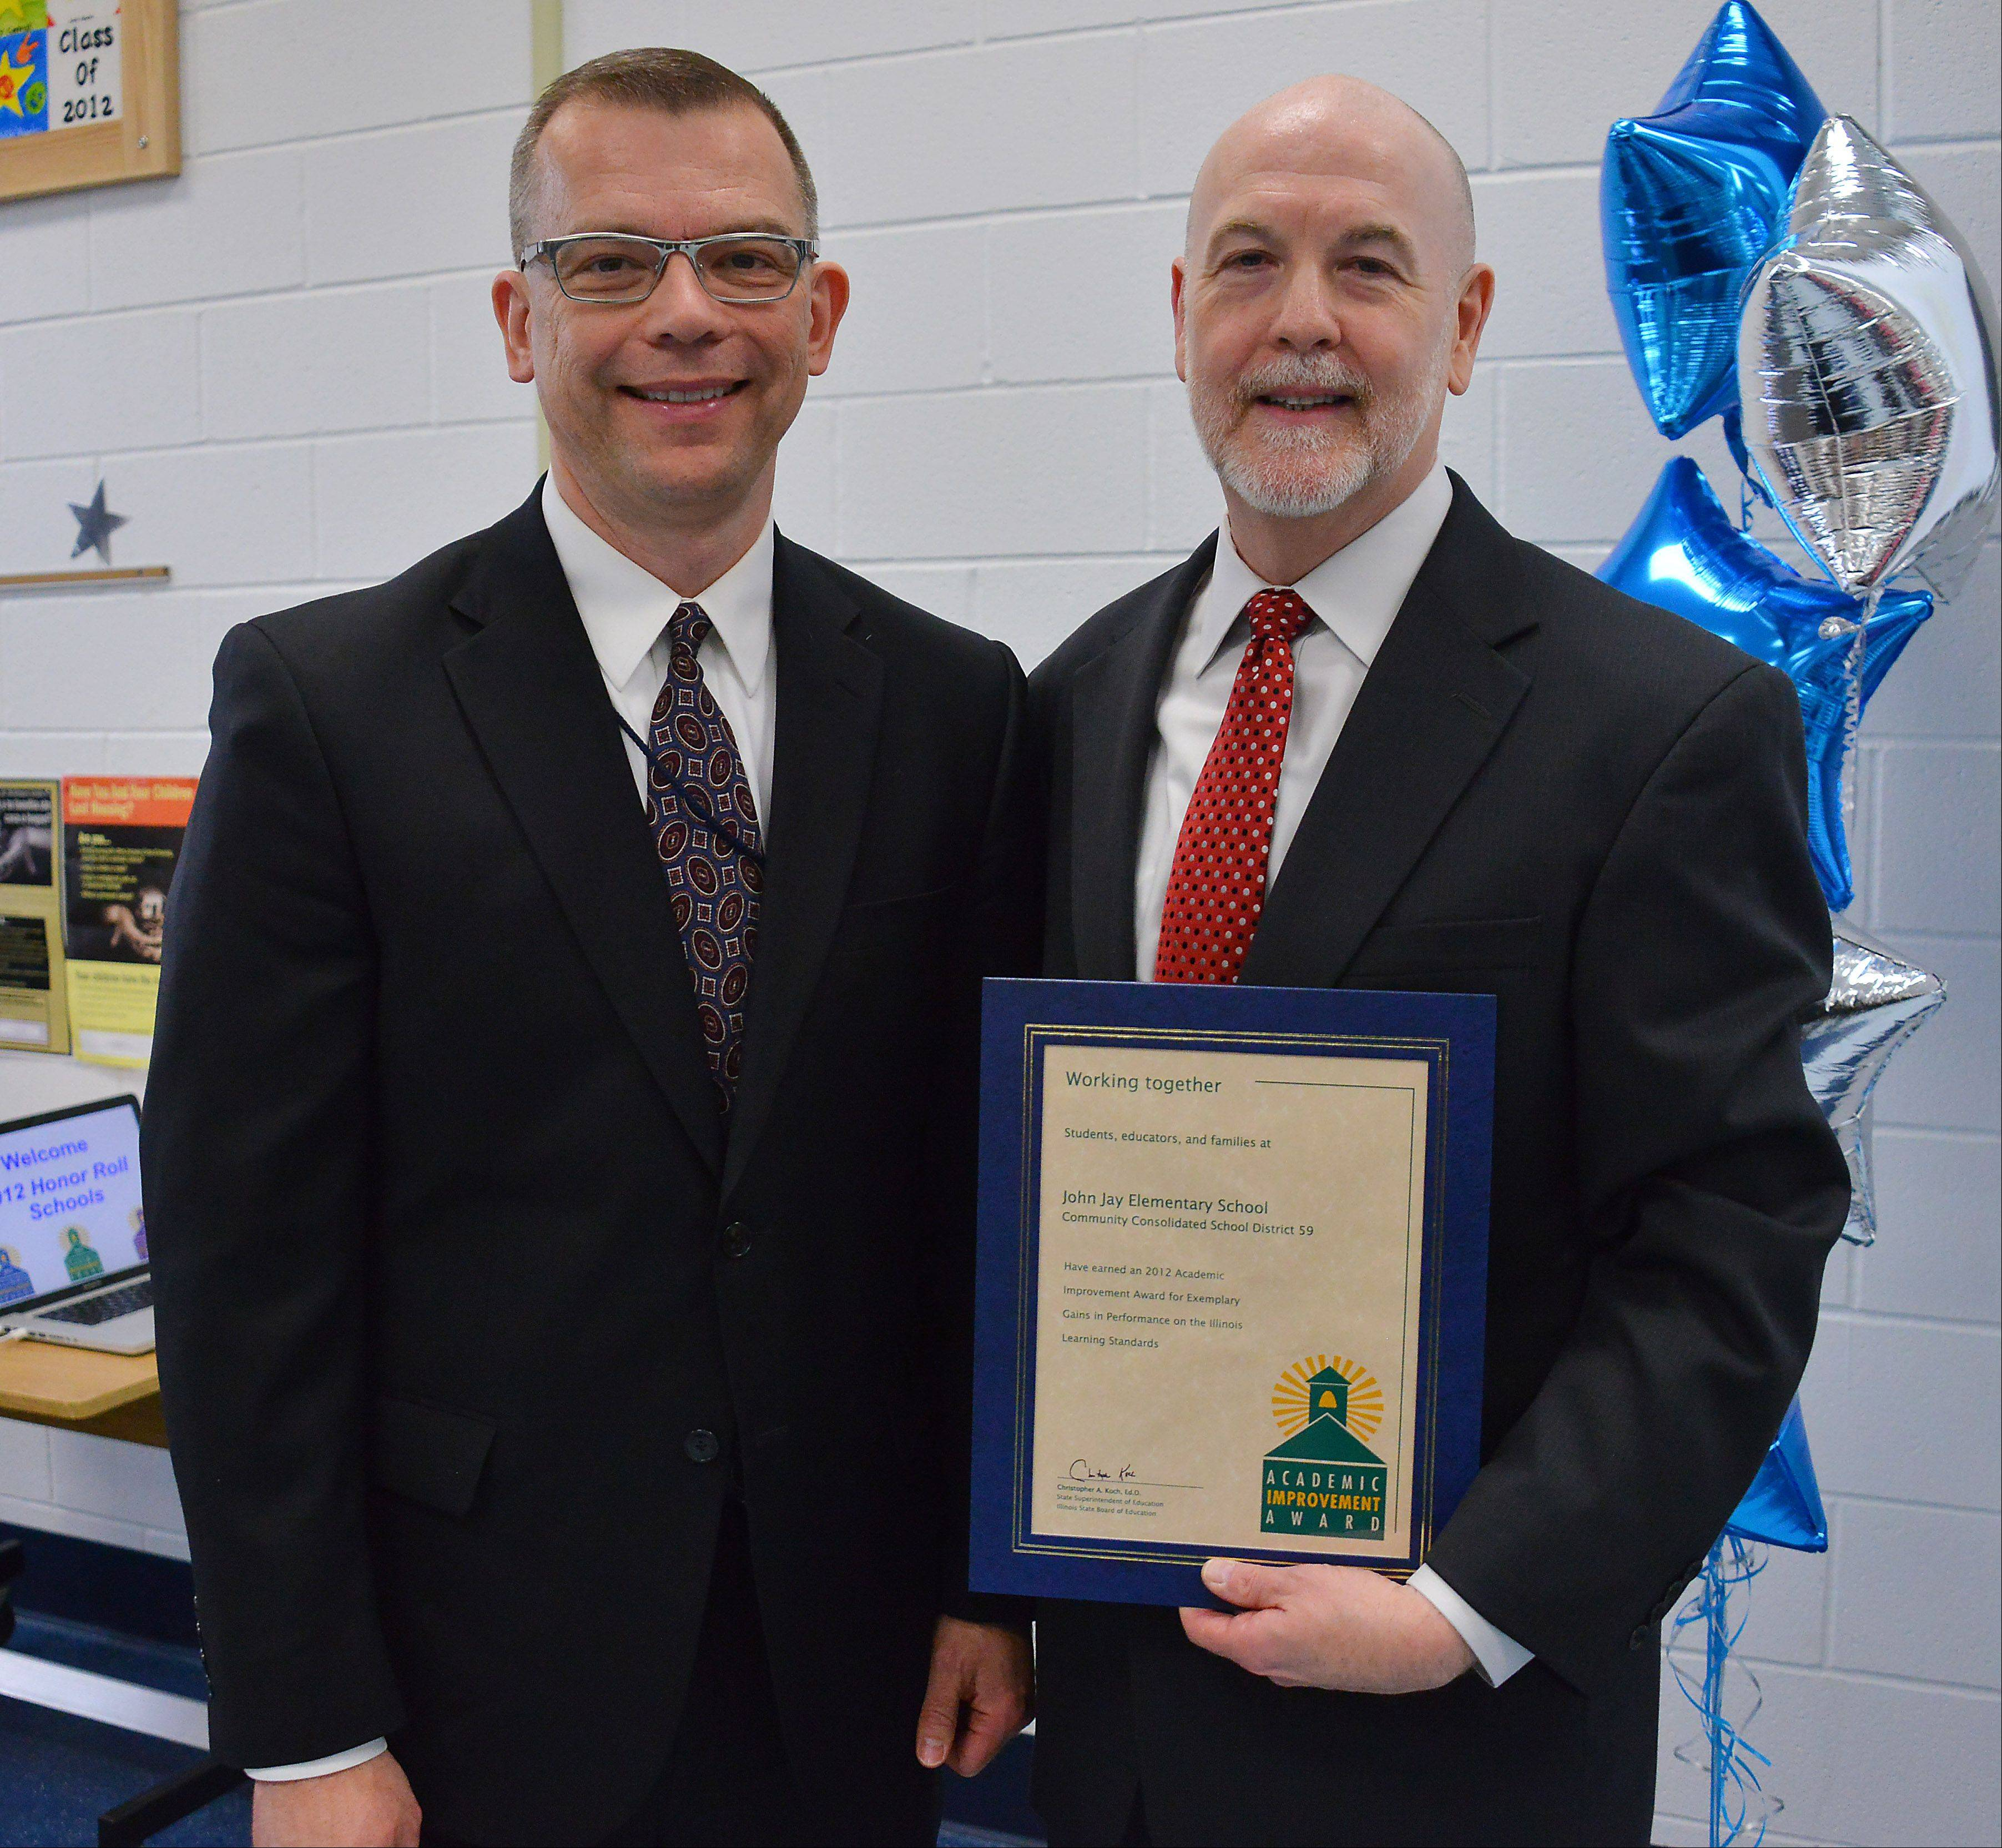 John Jay Elementary School Principal Dr. Thomas Seaton, right, with State Superintendent of Education Christopher Koch after receiving the Academic Improvement Award. The Mount Prospect School hosted an awards ceremony Monday for several Northwest suburban schools receiving the honor.